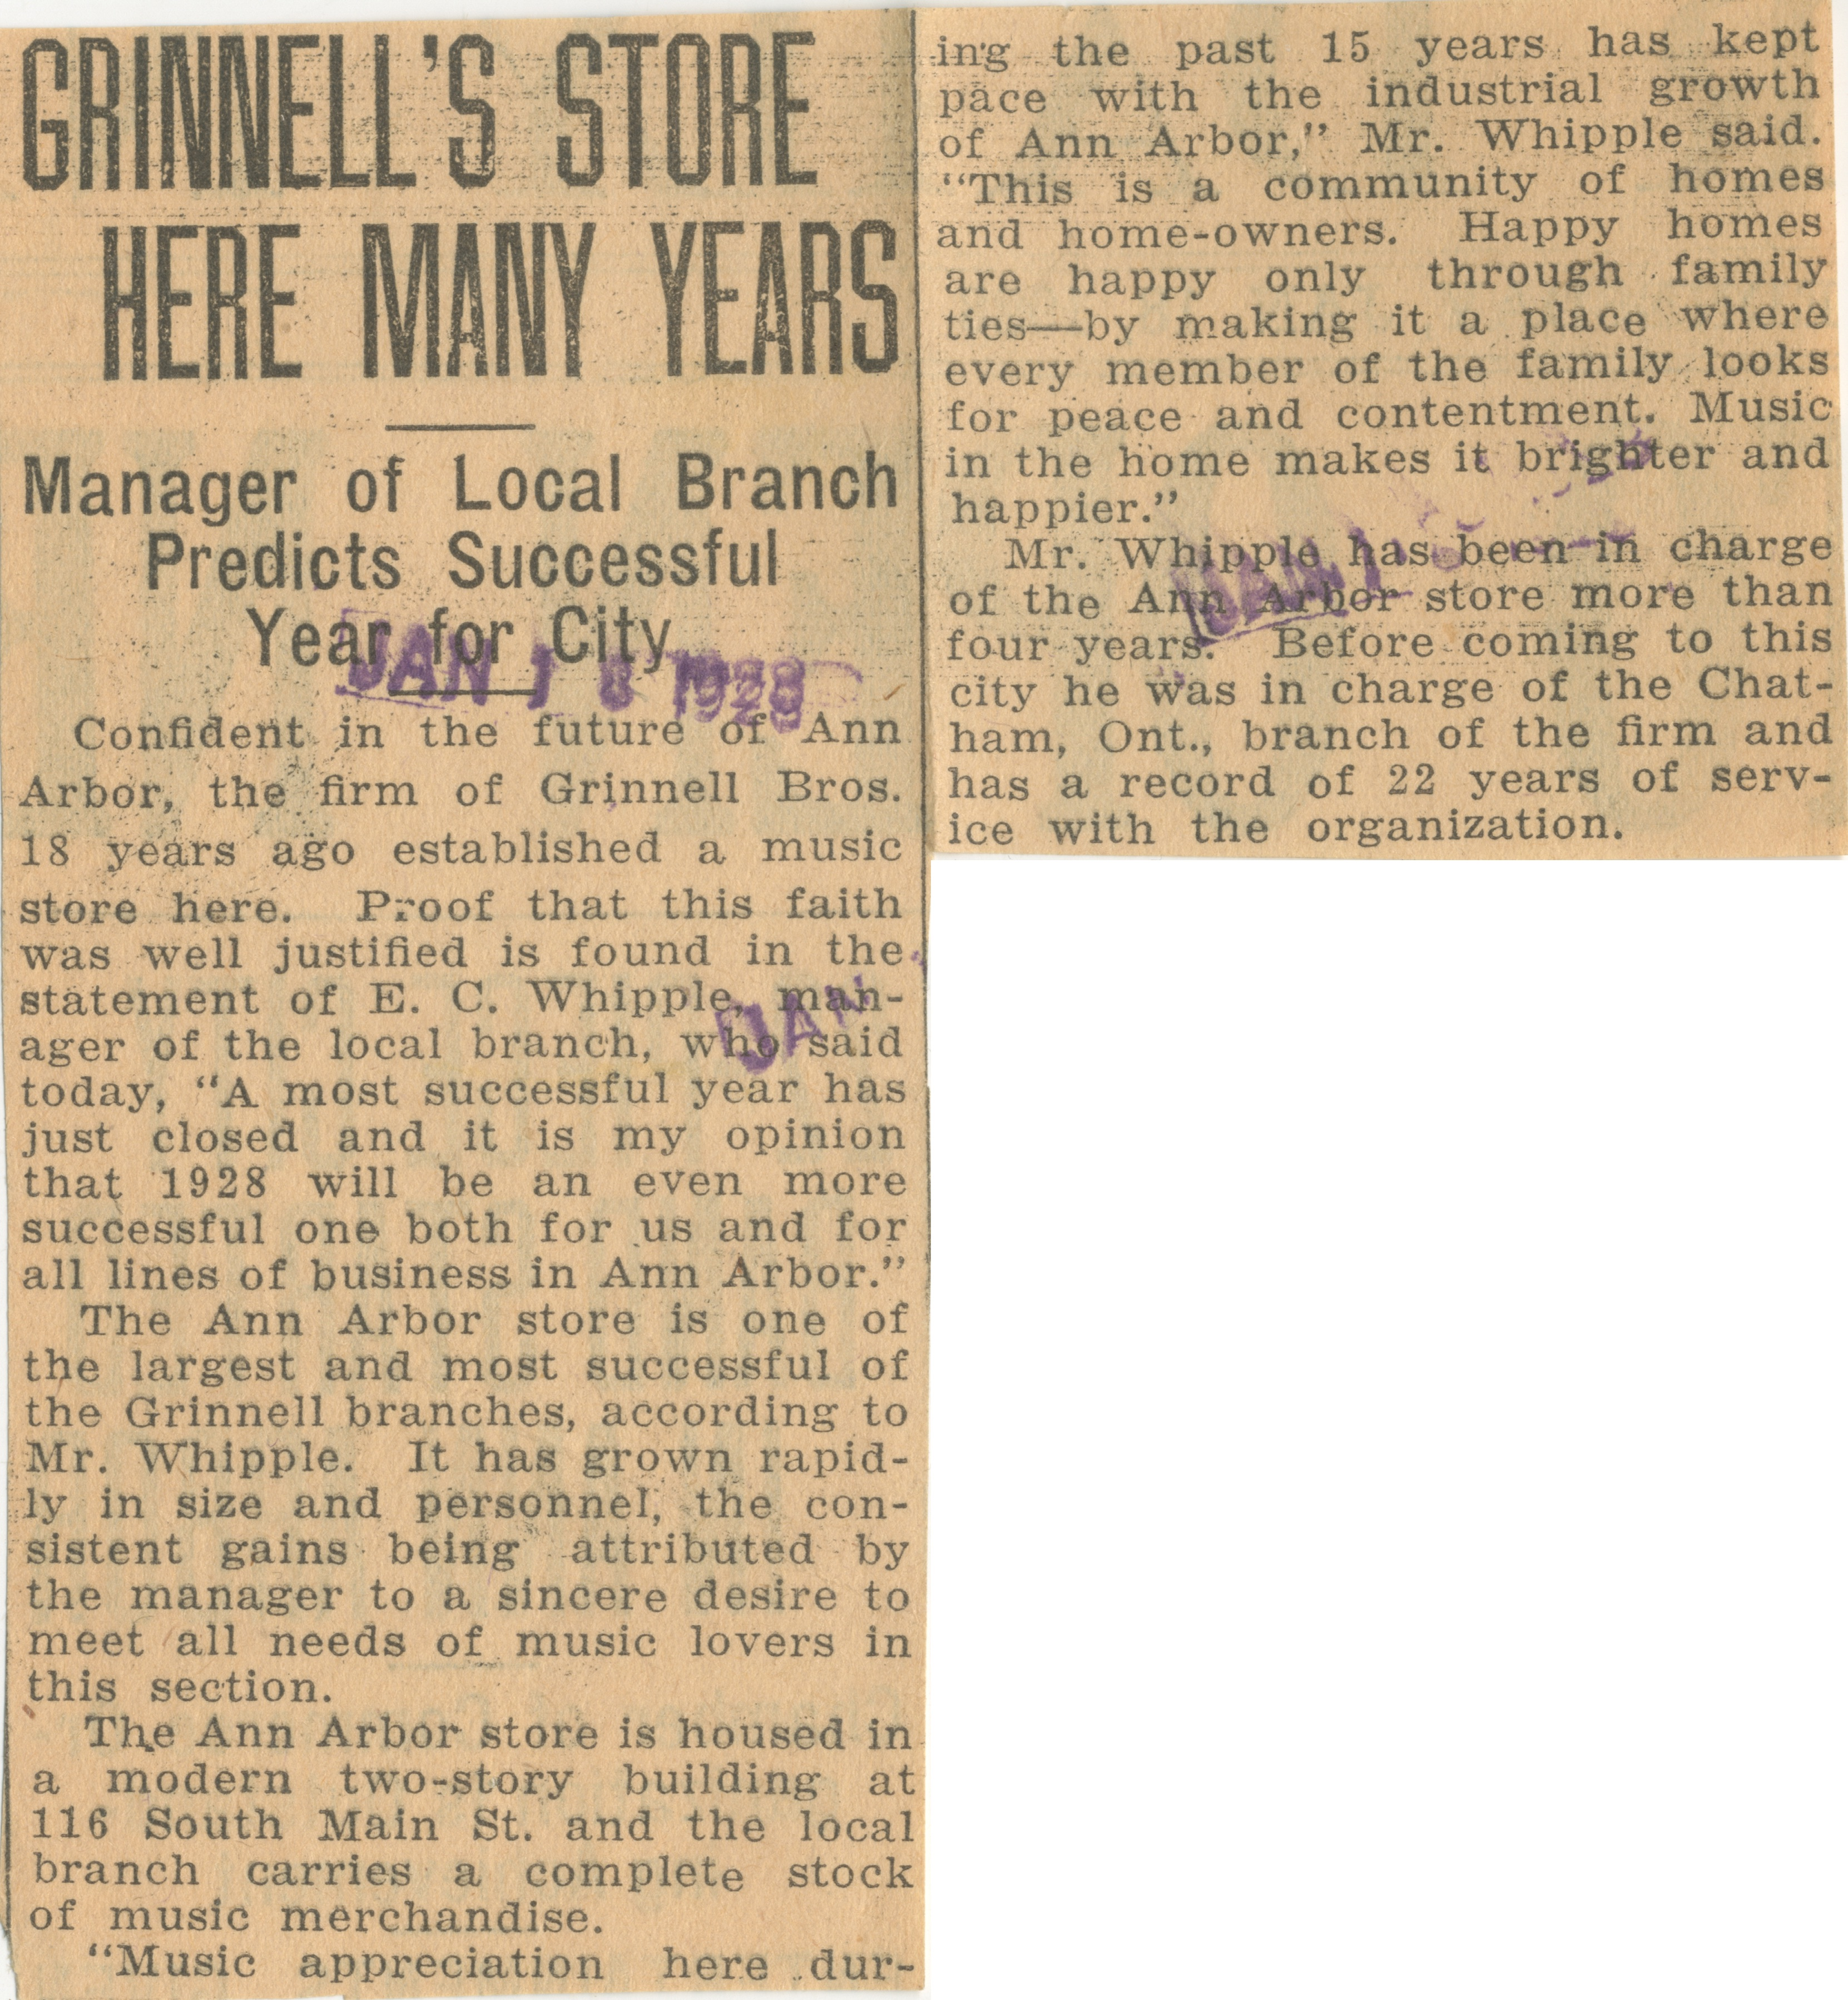 Grinnell's Store Here Many Years image